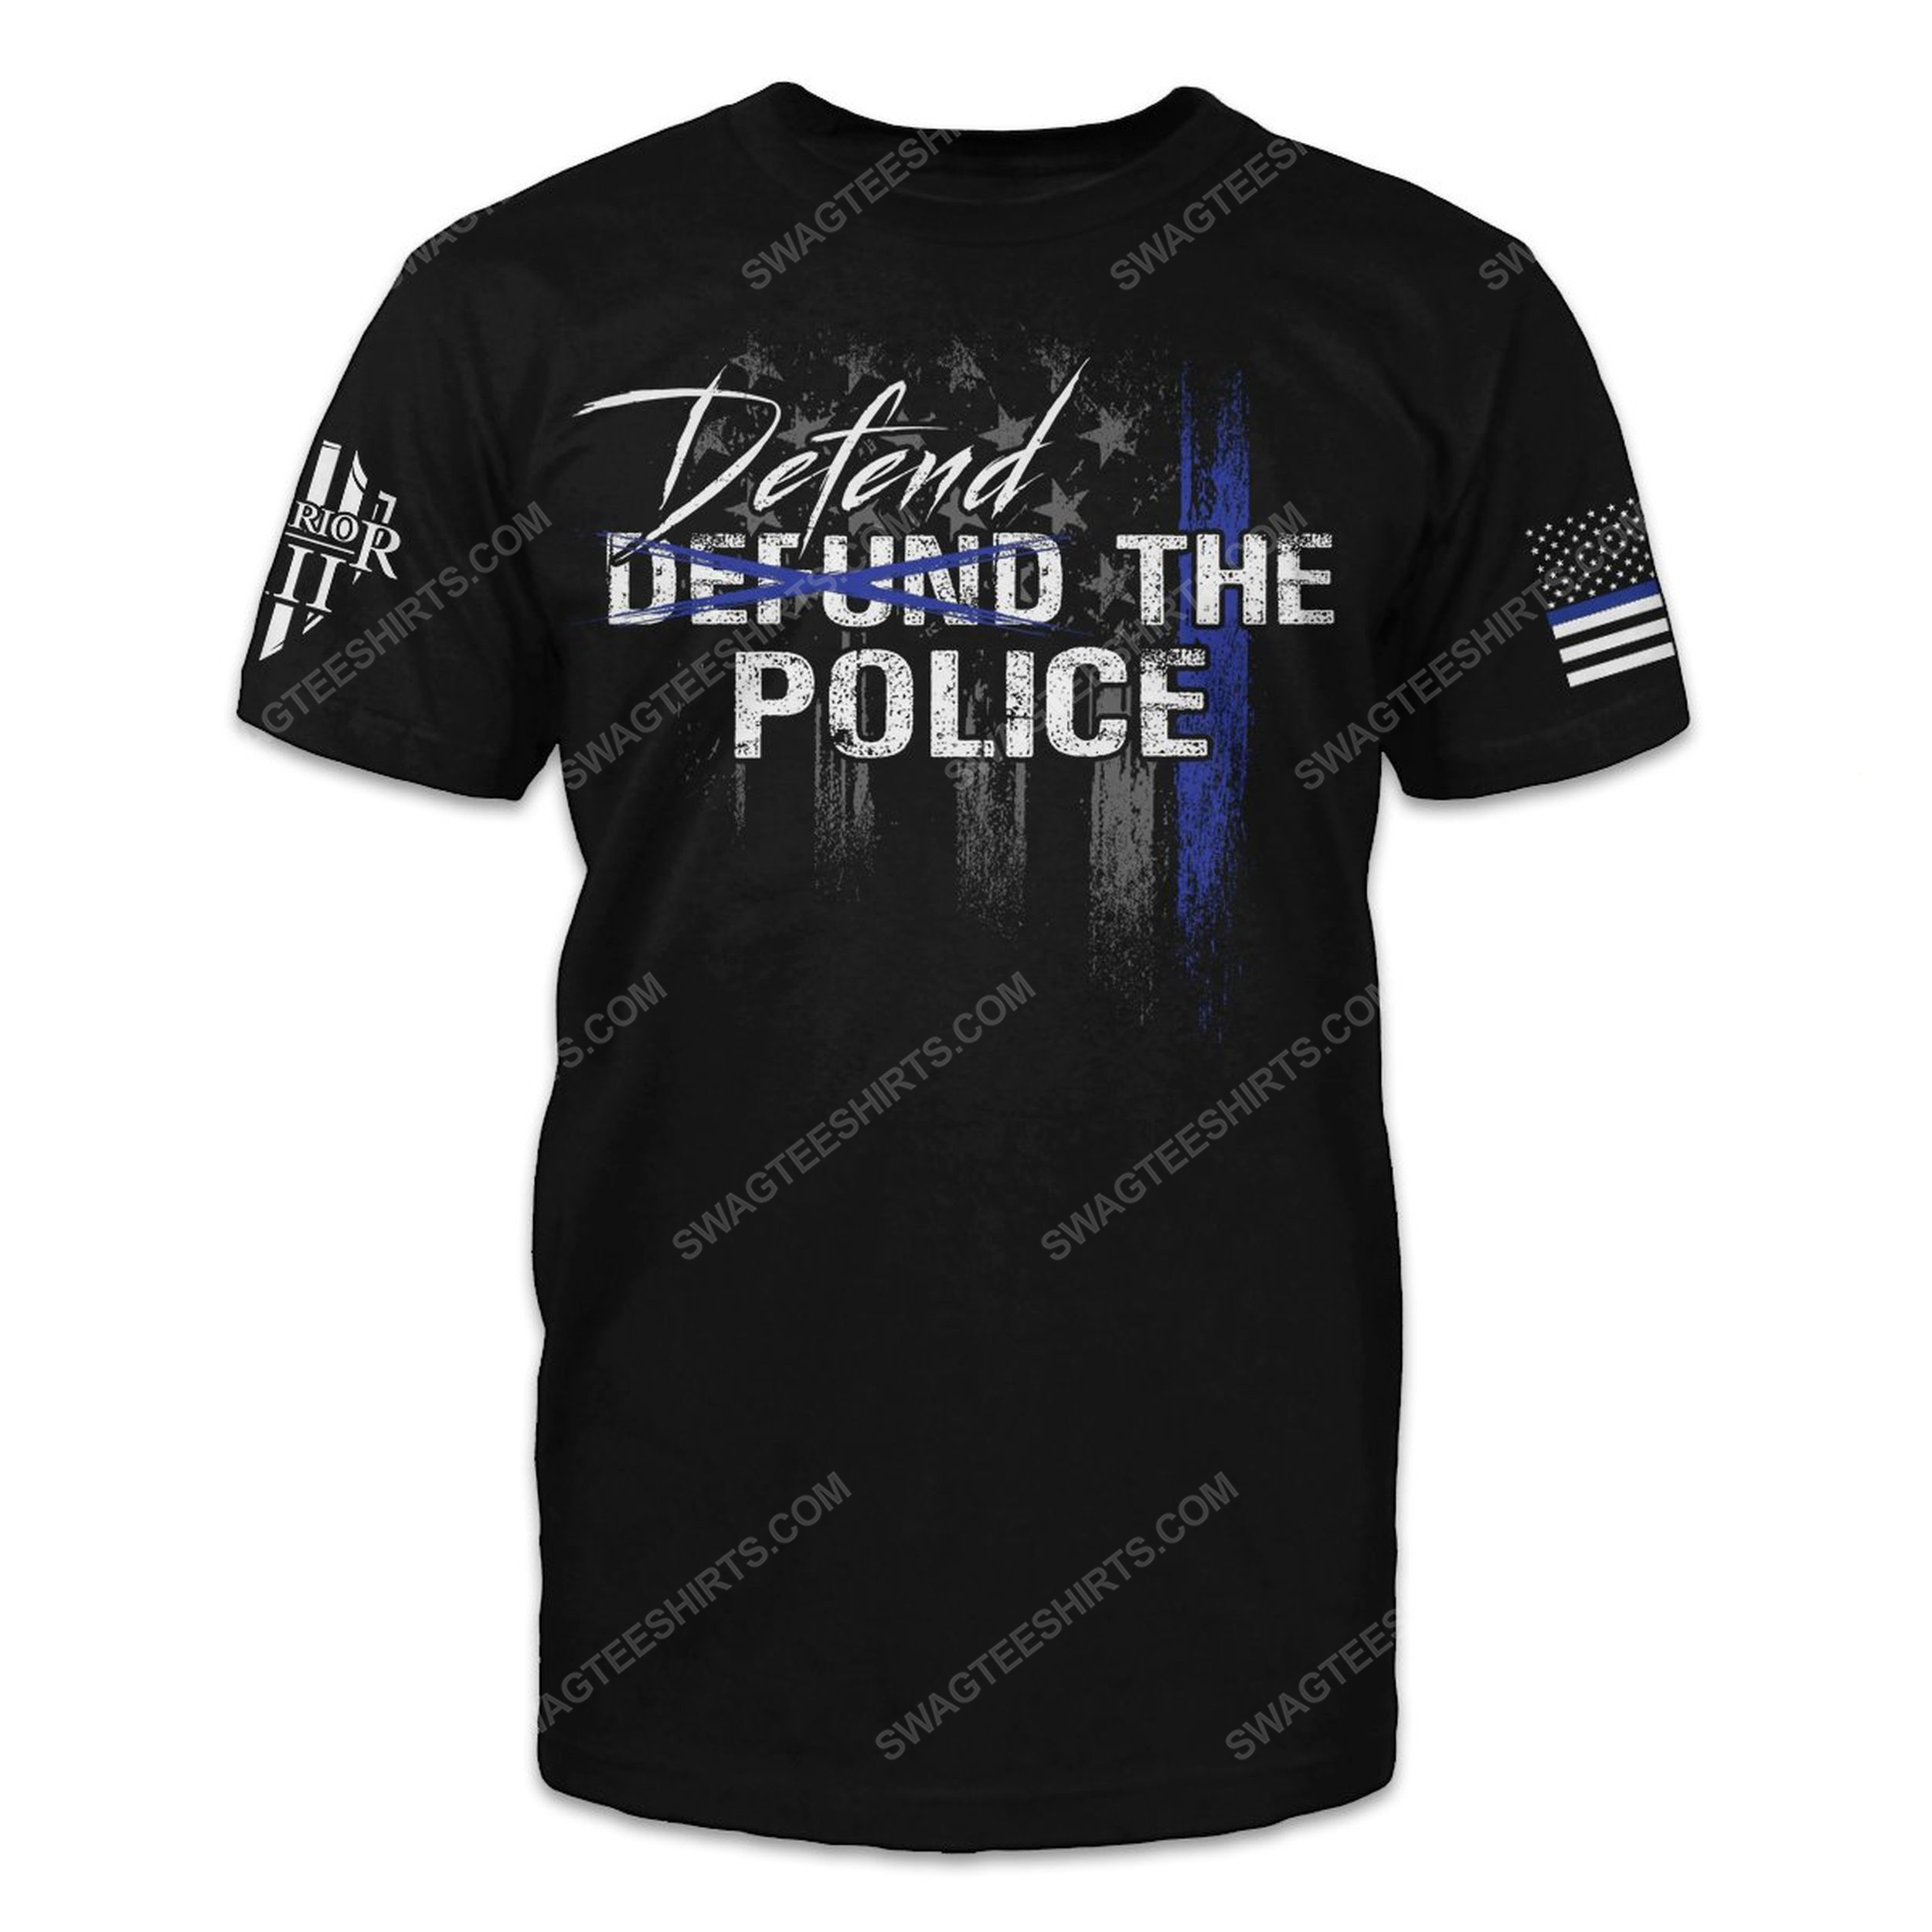 American law enforcement defend the police shirt 2(1)